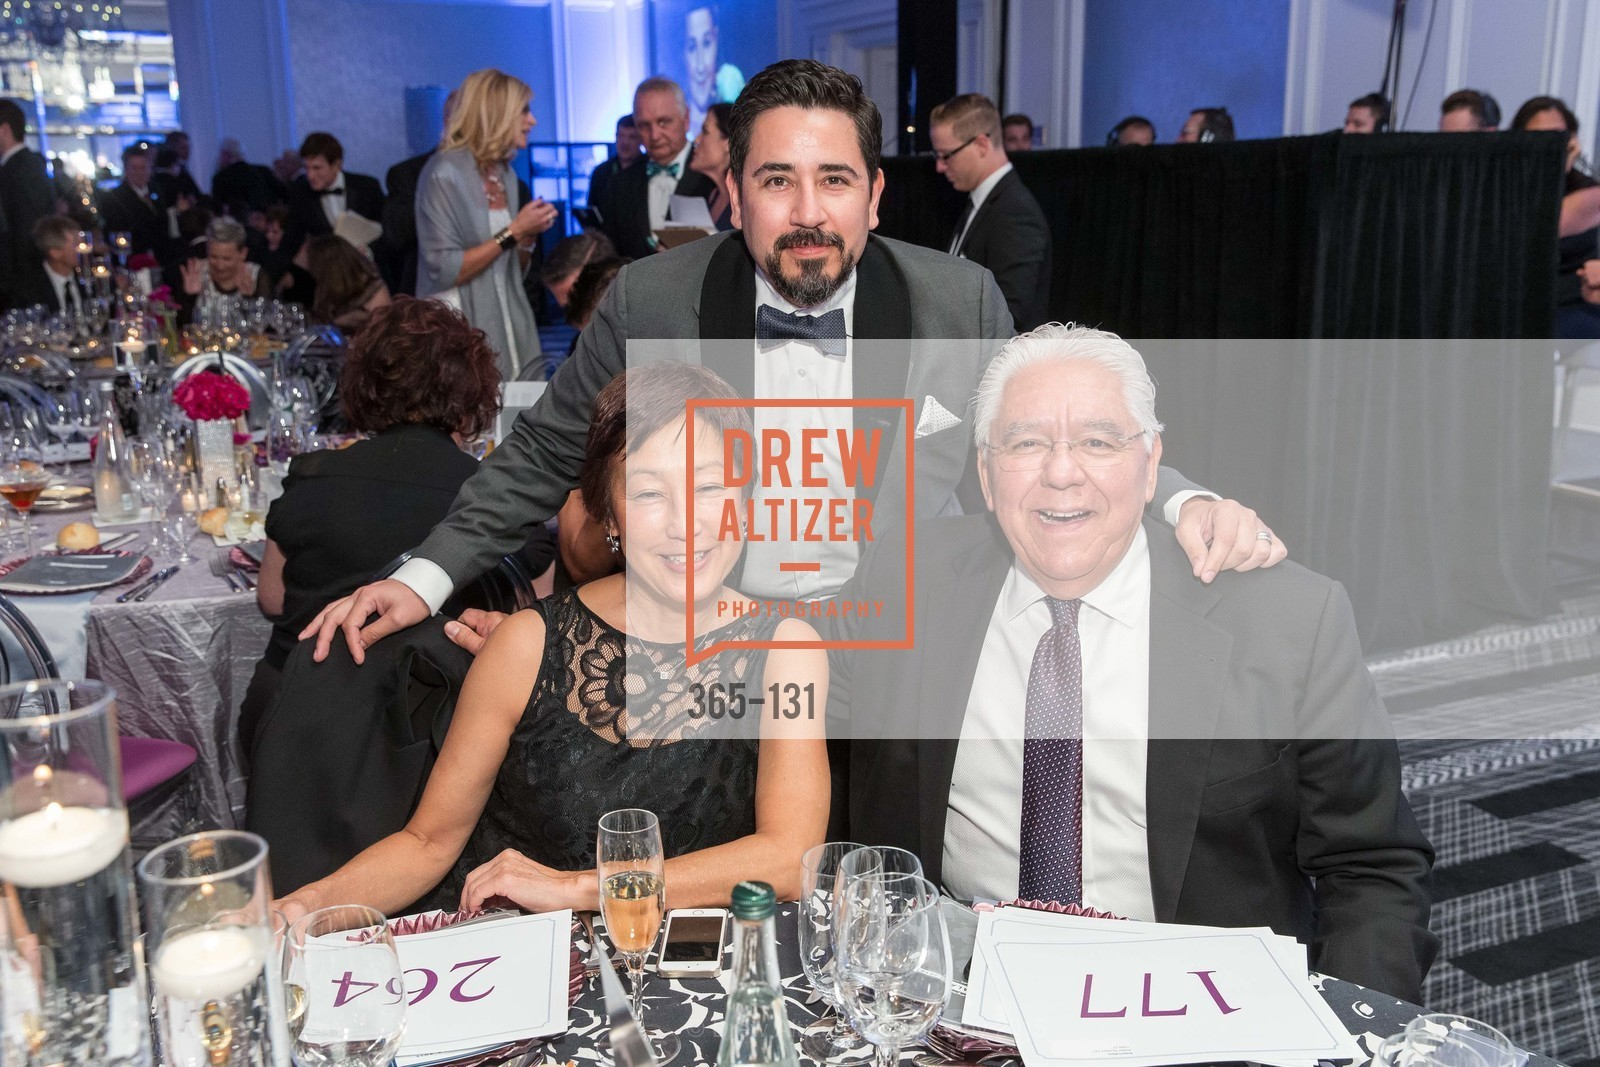 Judy Shizuru, Gonzalo Escudero, Senator Art Torres, JUVENILE DIABETES RESEARCH FOUNDATION  Hope Gala, The Ritz-Carlton, May 29th, 2015,Drew Altizer, Drew Altizer Photography, full-service agency, private events, San Francisco photographer, photographer california